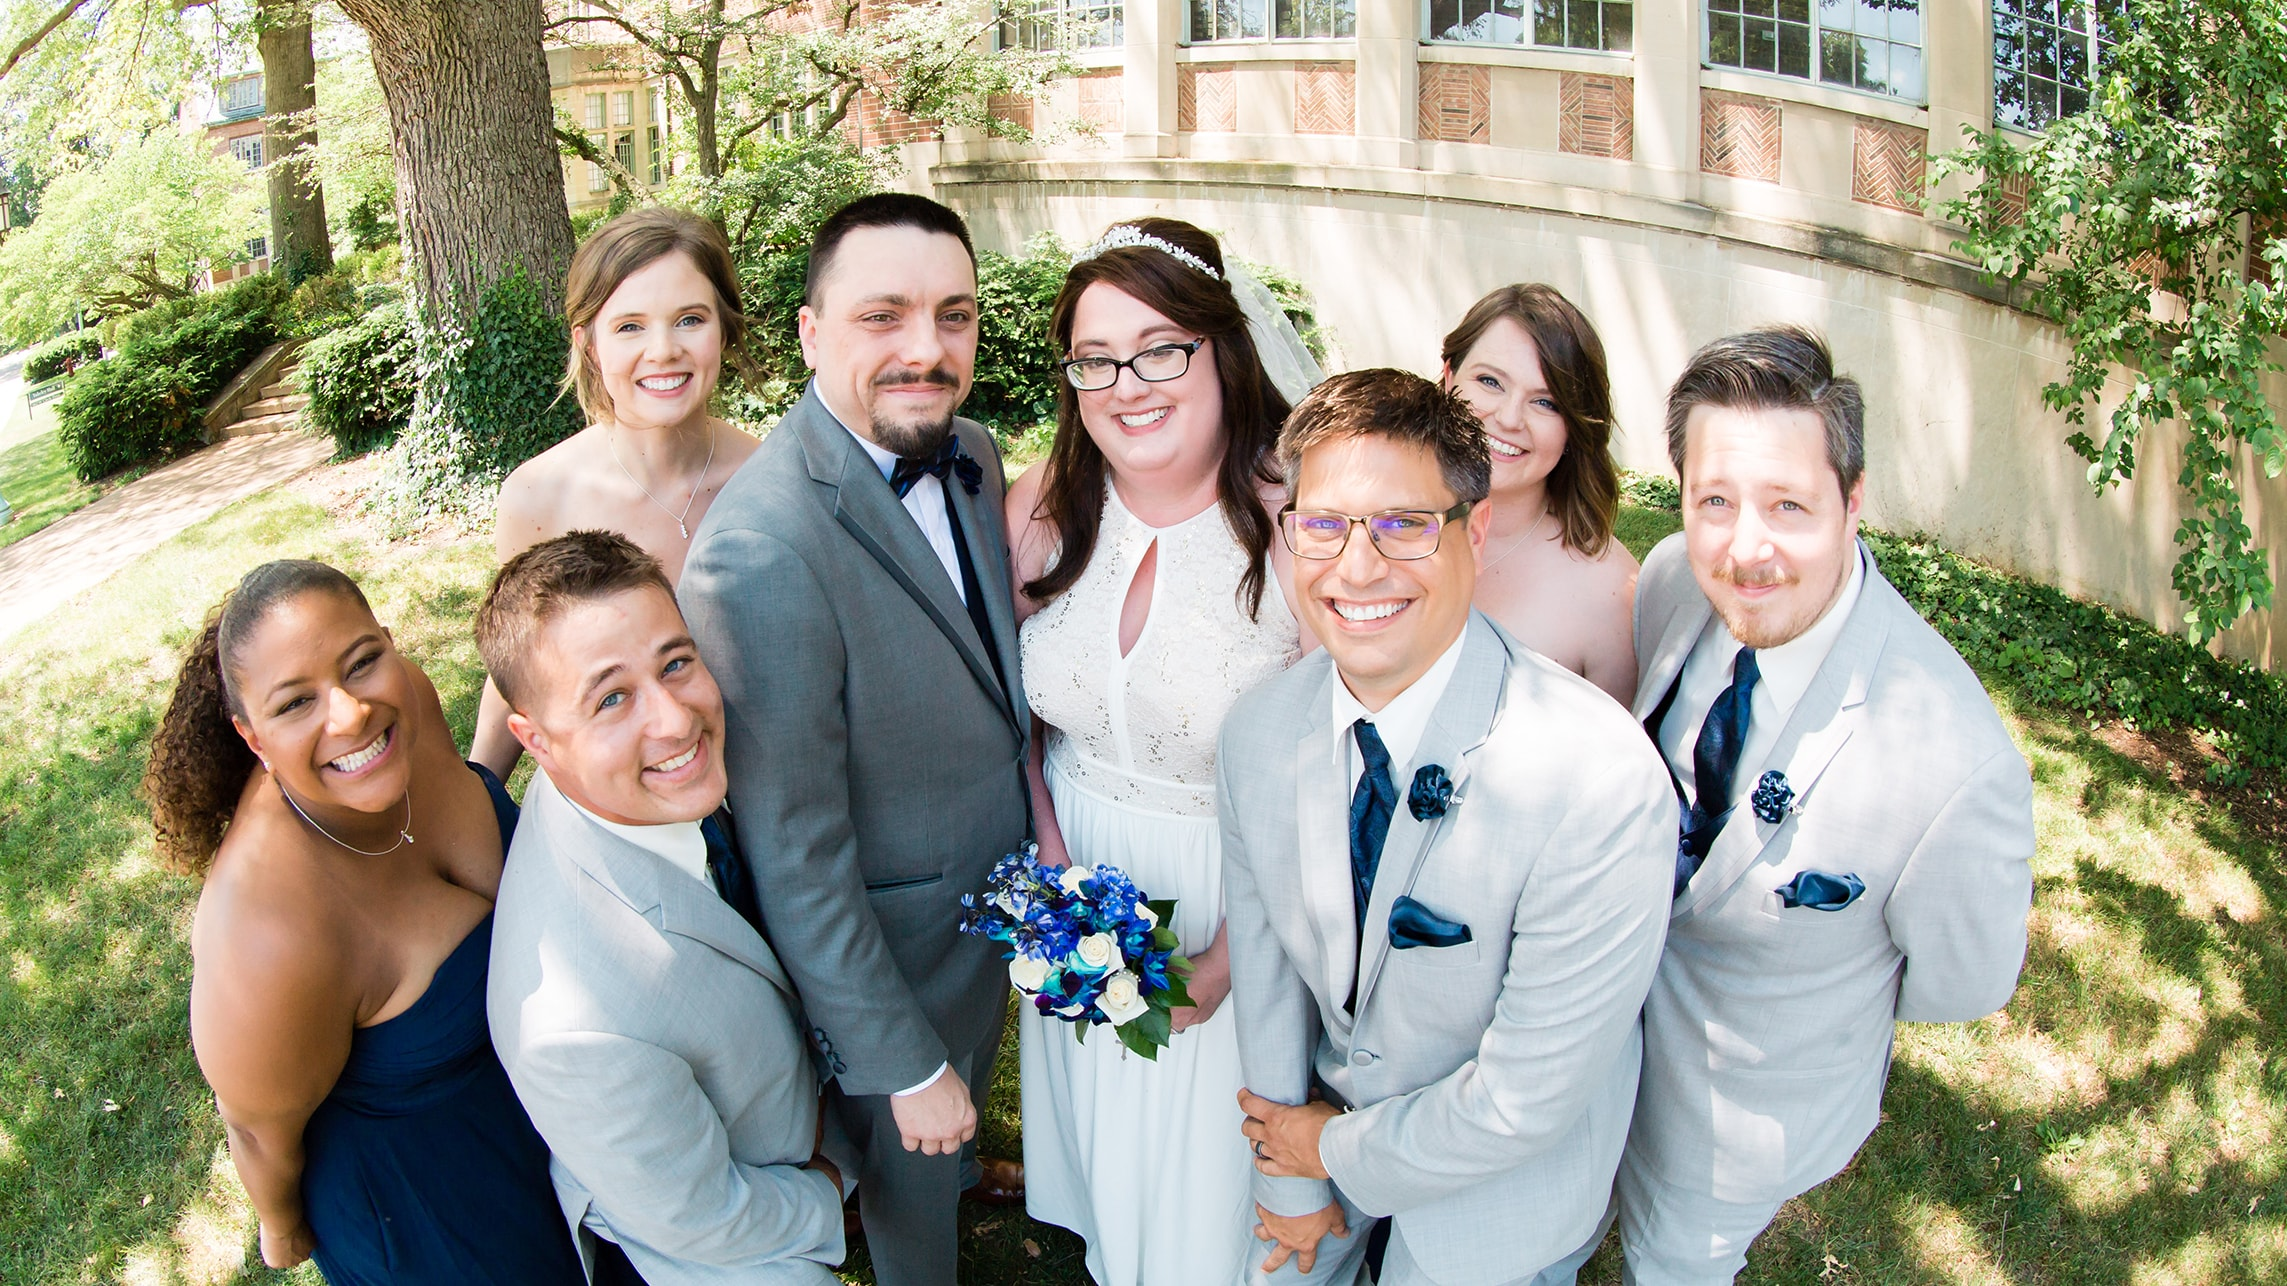 Caitlin Boyle Wetzel and Richard Wetzel, surrounded by their wedding party